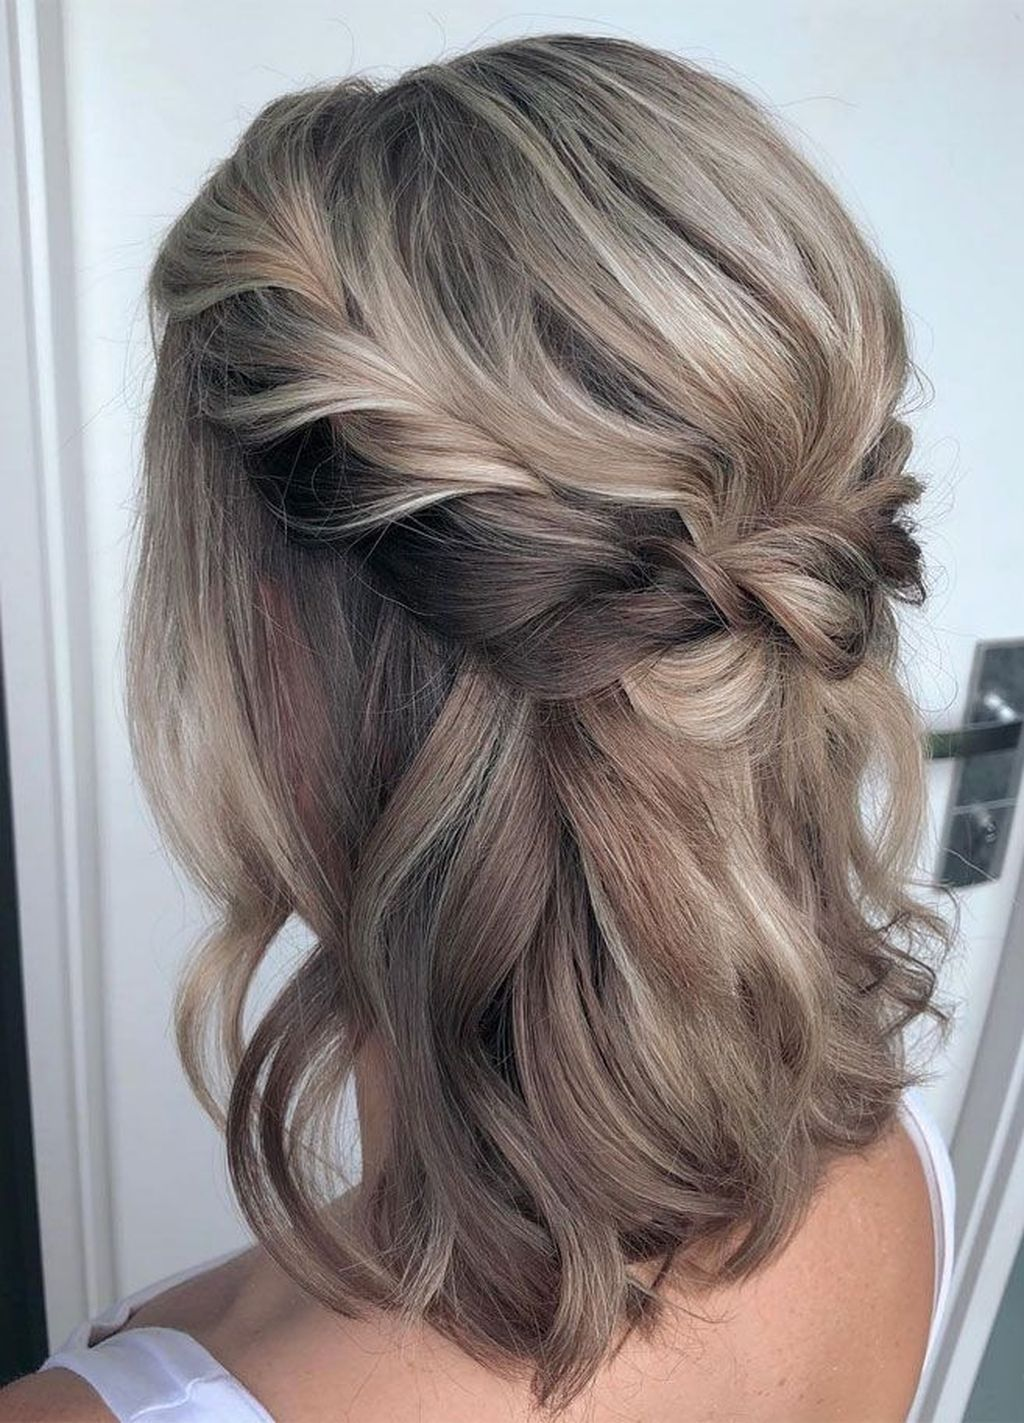 Excellent Photo Half up half down hair short Strategies About your wedding recep...#excellent #hair #photo #recep #short #strategies #wedding